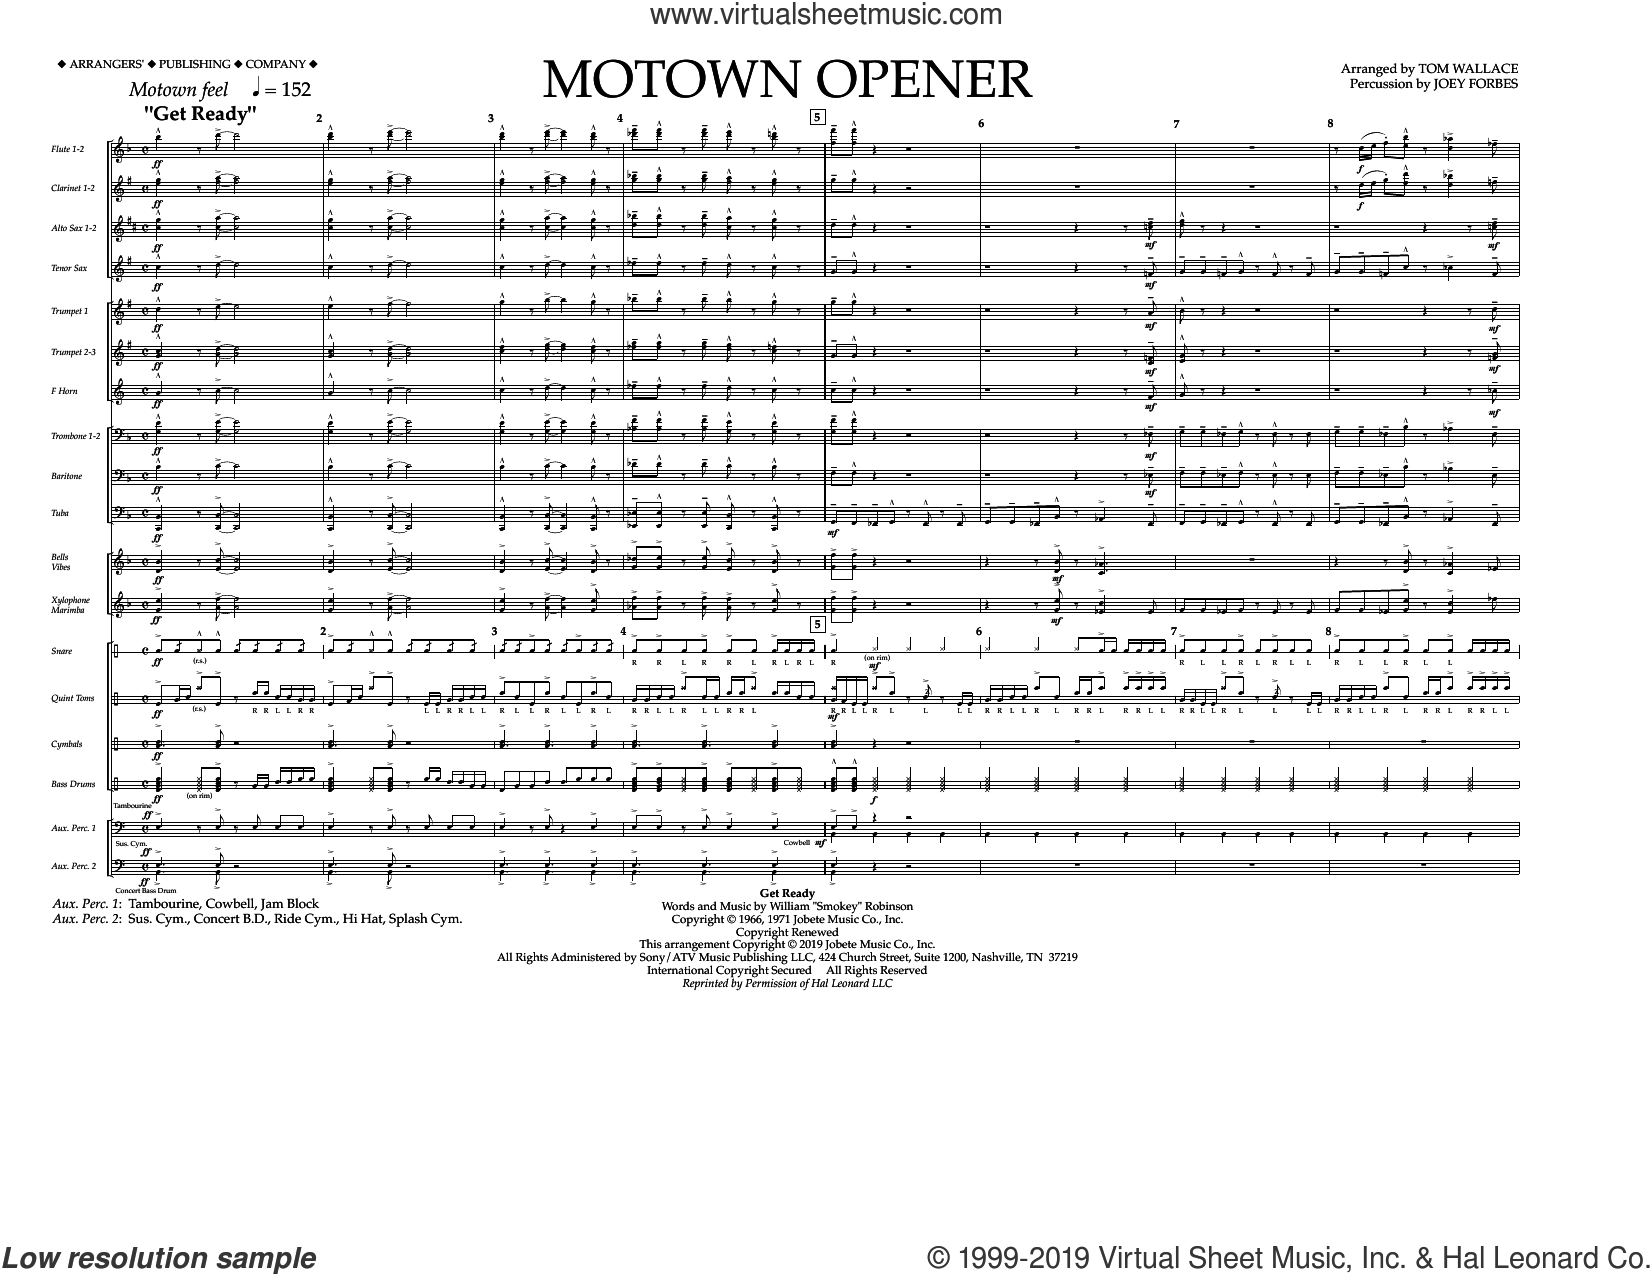 Motown Theme Show Opener (arr. Tom Wallace) (COMPLETE) sheet music for marching band by Tom Wallace and Miscellaneous, intermediate skill level